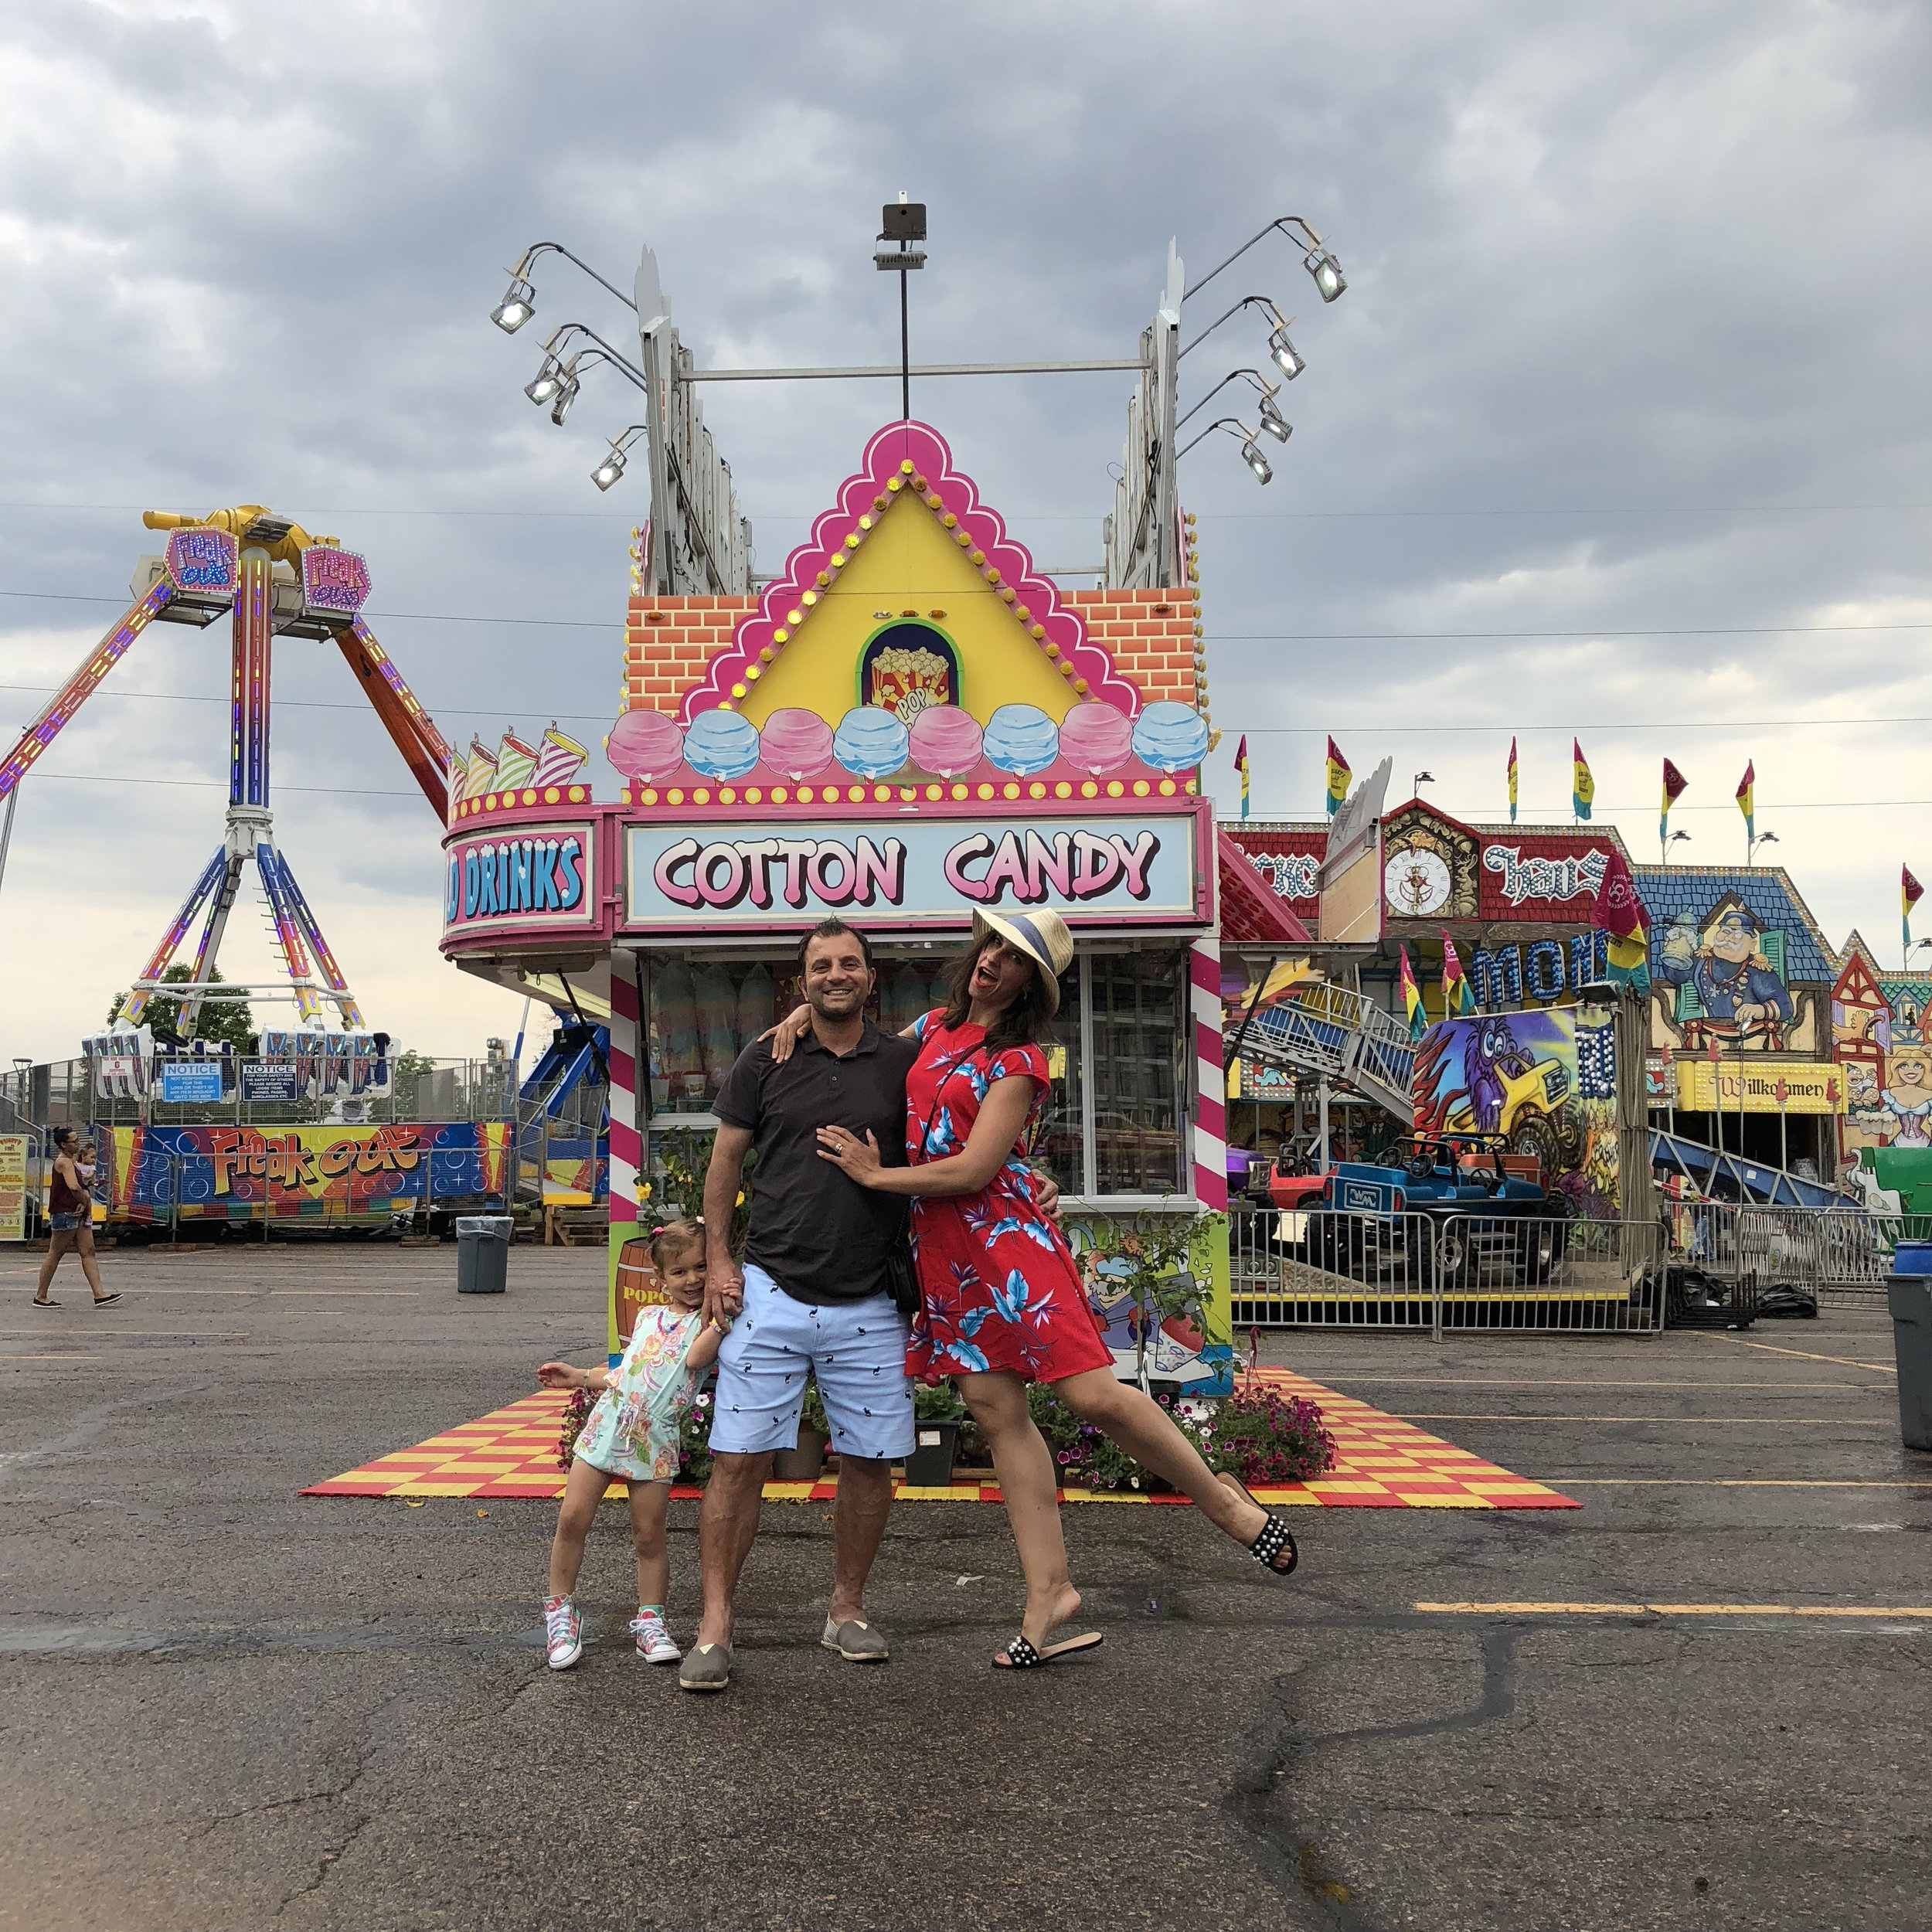 Carnival Colorado June 2018.jpg